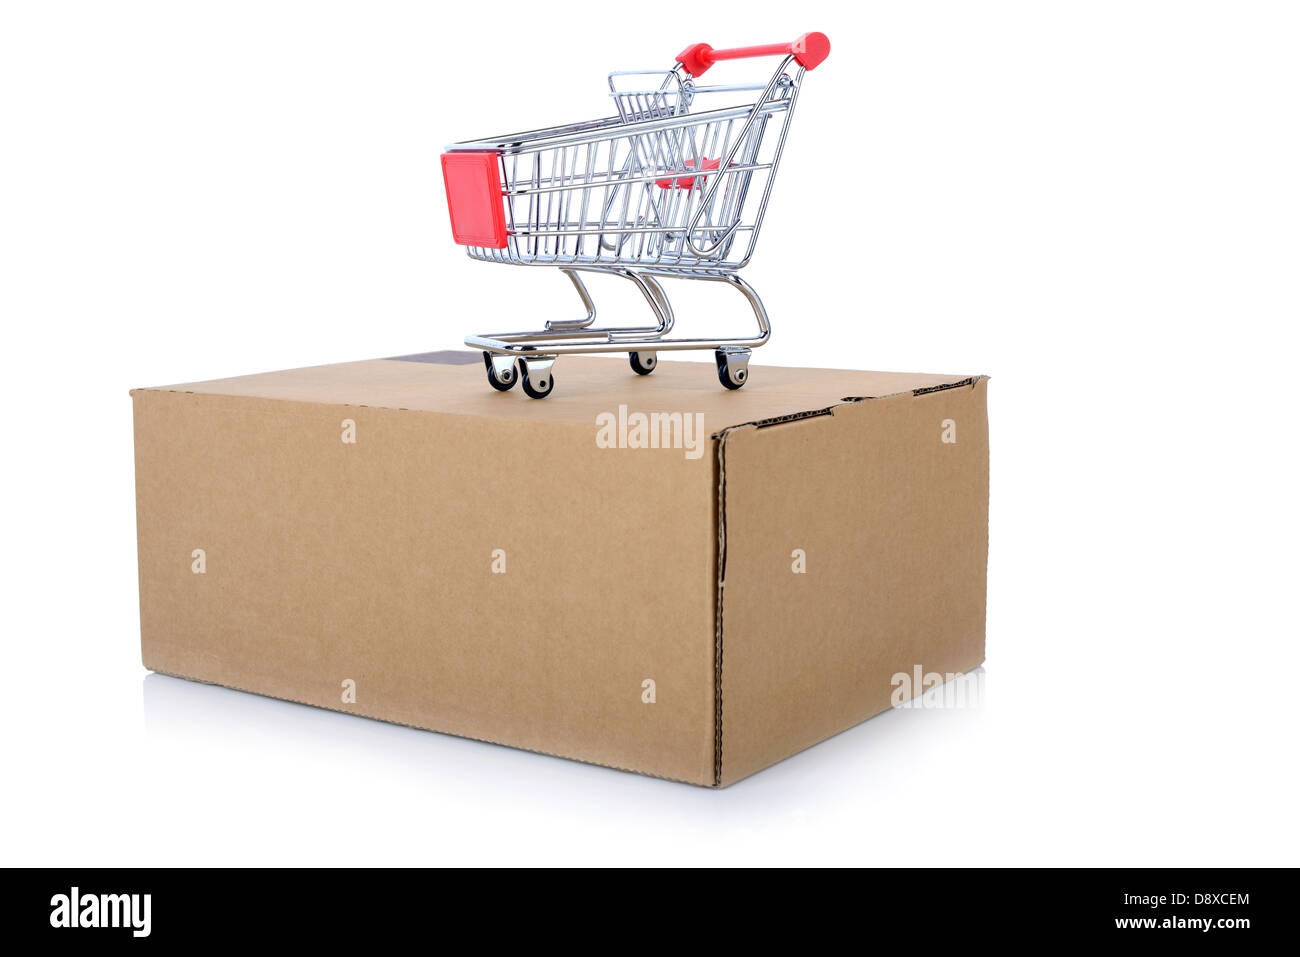 concept of Internet shopping of a push cart isolated on top of a package - Stock Image